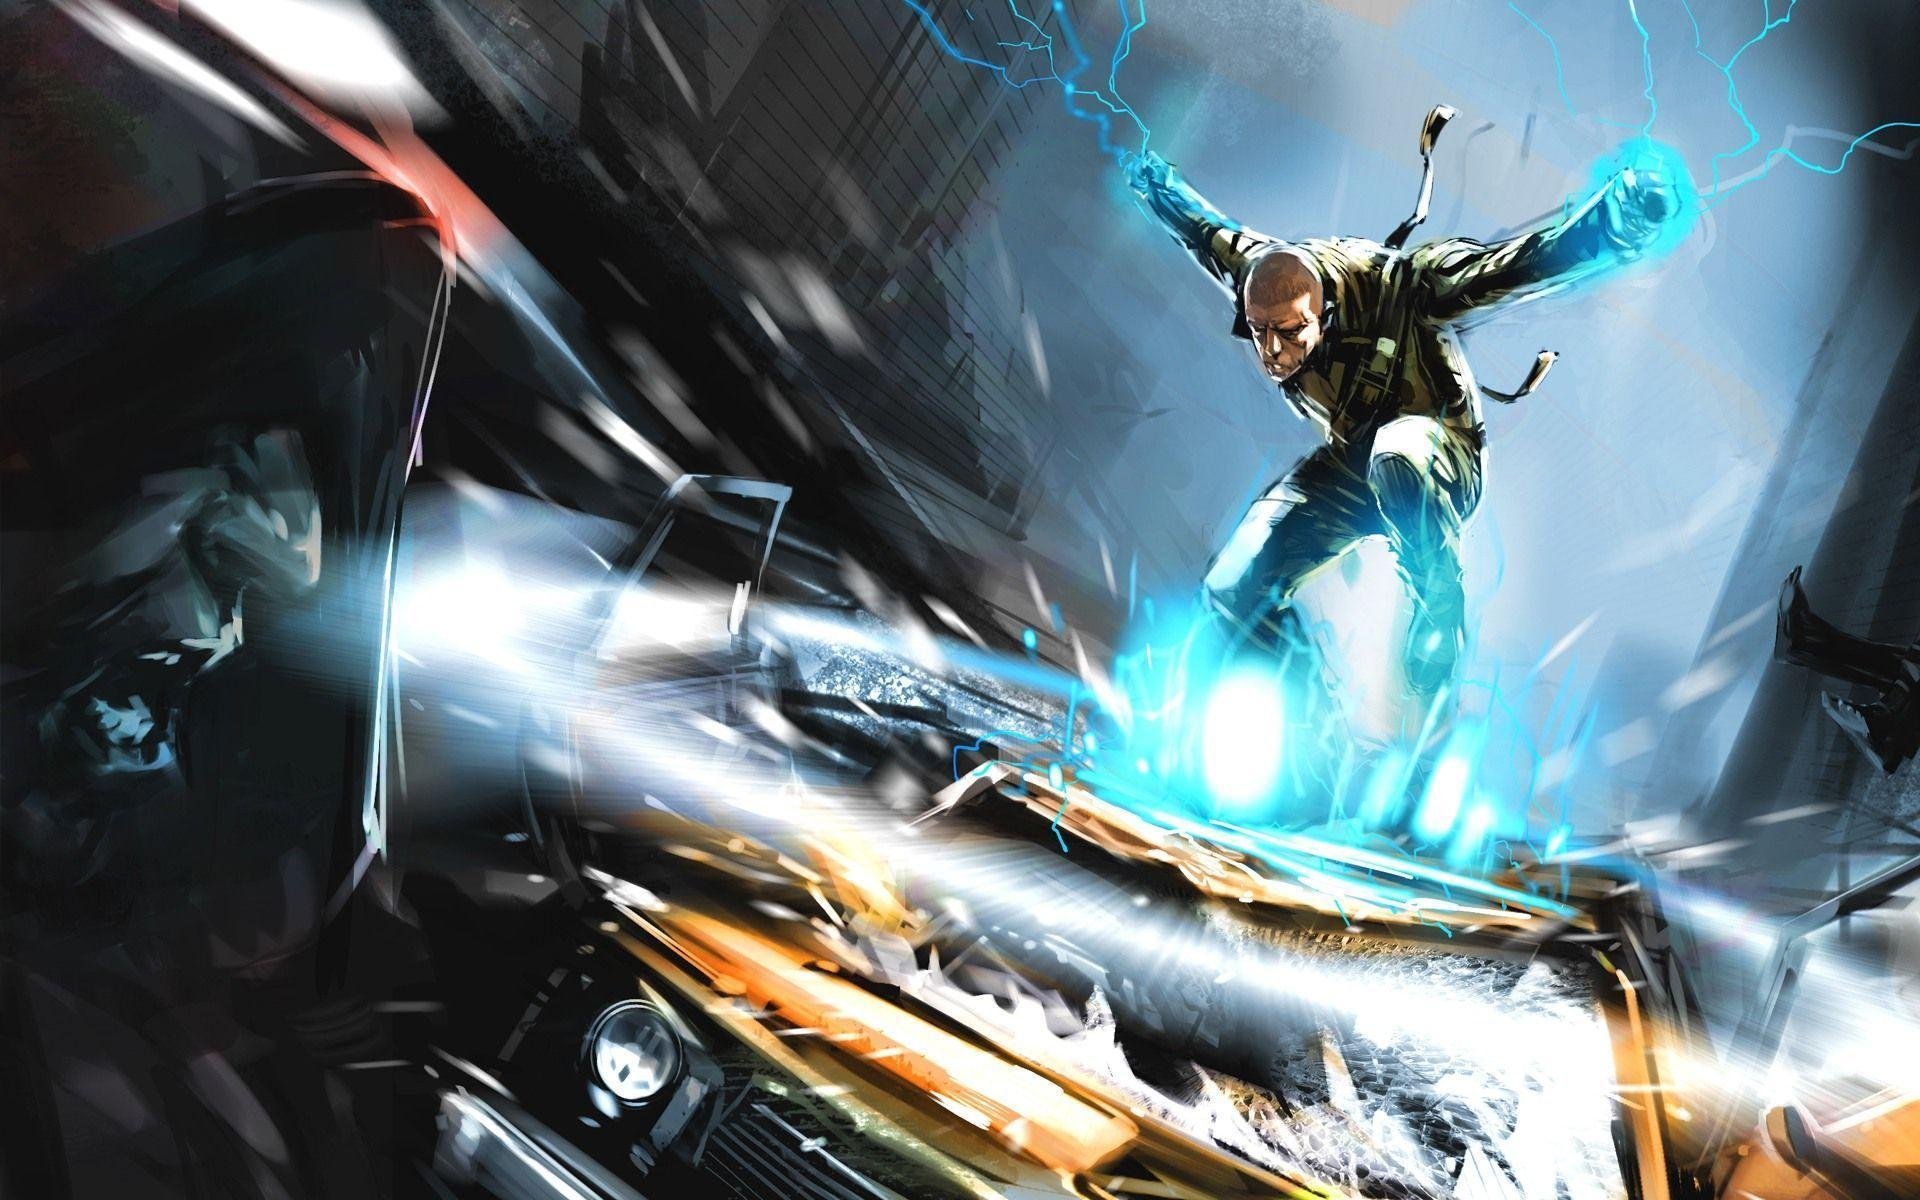 Image For > Infamous 2 Wallpapers 1920x1080